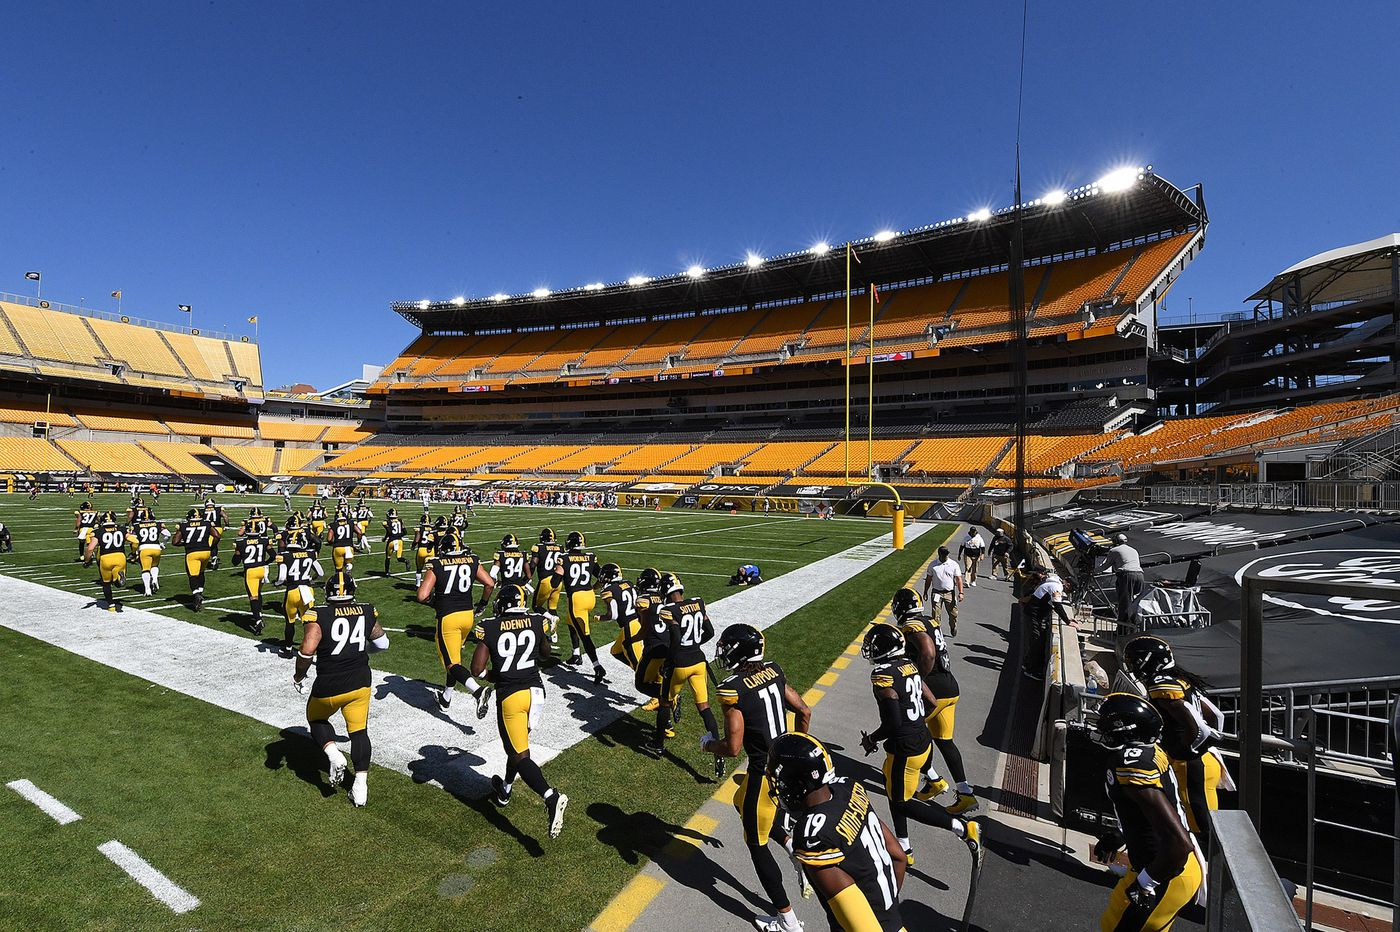 Pennsylvania loosens coronavirus restrictions on crowds, allowing fans back into sports stadiums